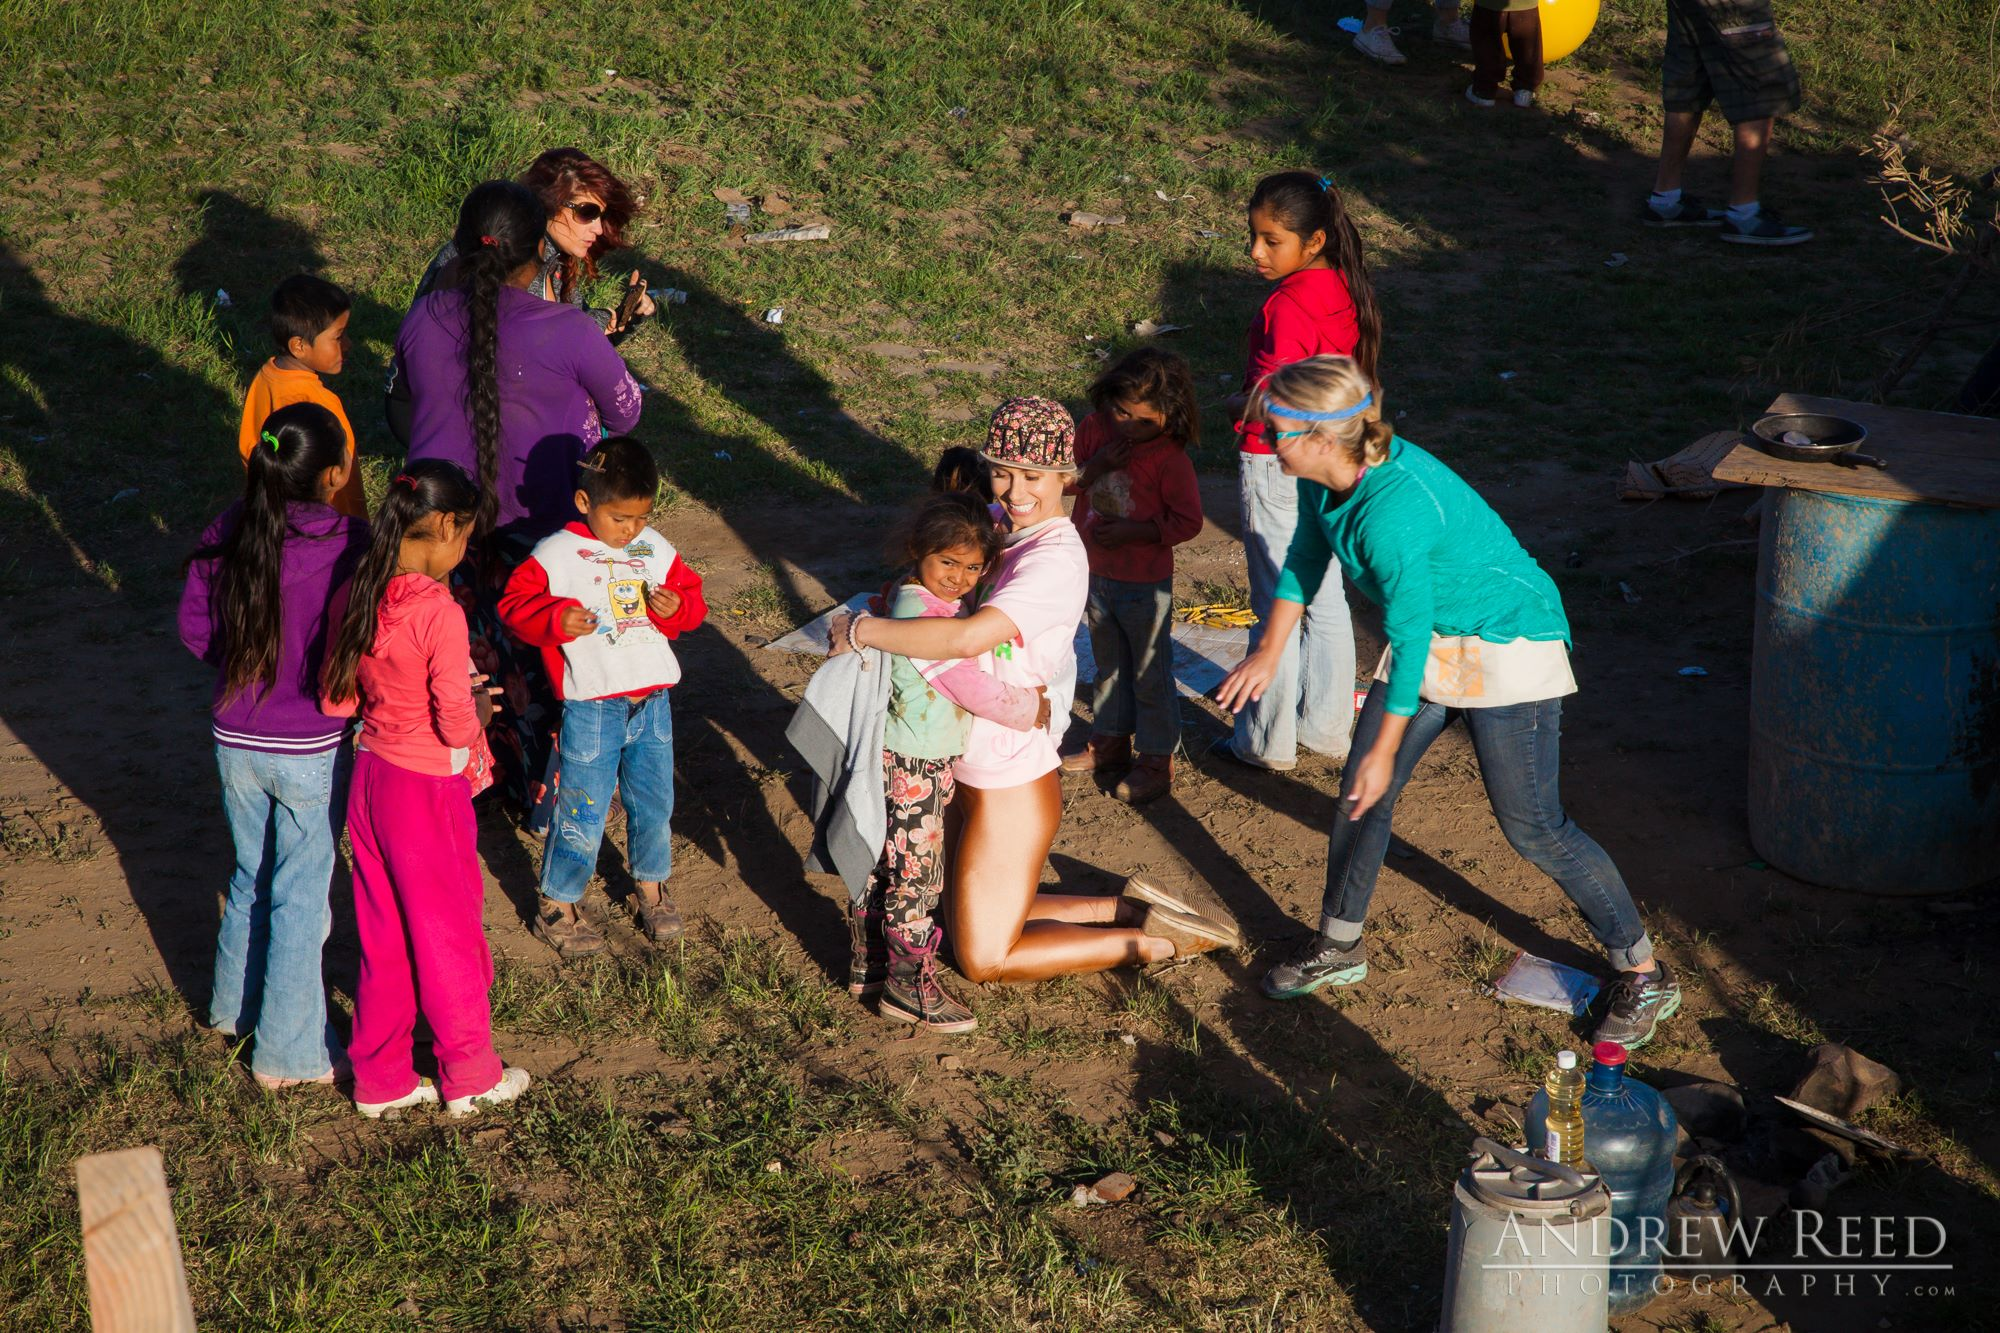 After a few hours they started to open up and Patricia, Jesus, Martina and their siblings became our playmates! They loved coloring, playing with kites, and Patricia soon took charge as the leader :)